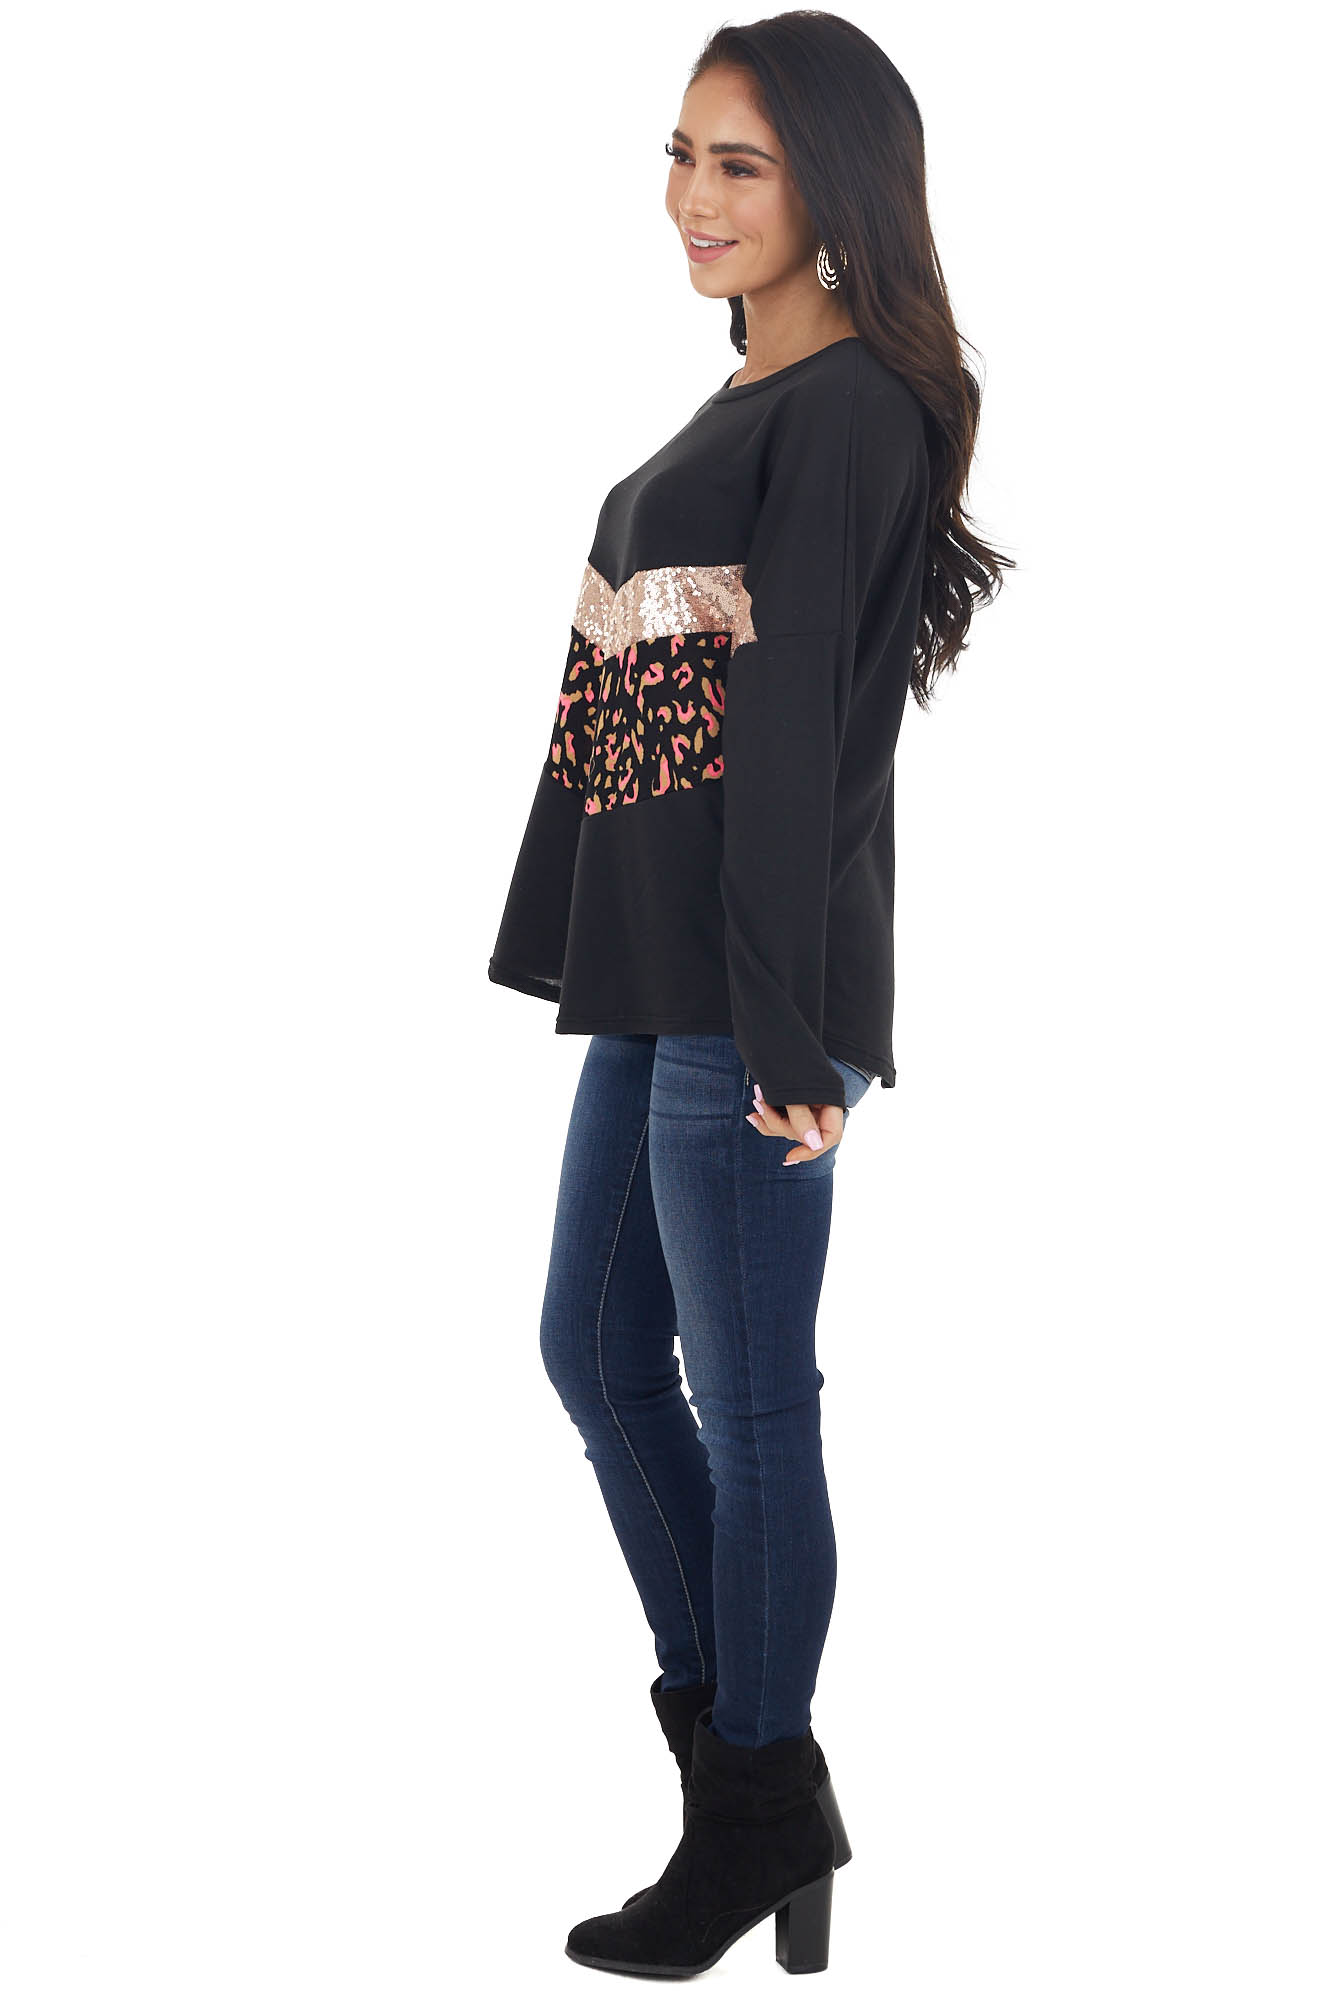 Black Long Sleeve Knit Top with Chevron Colorblock